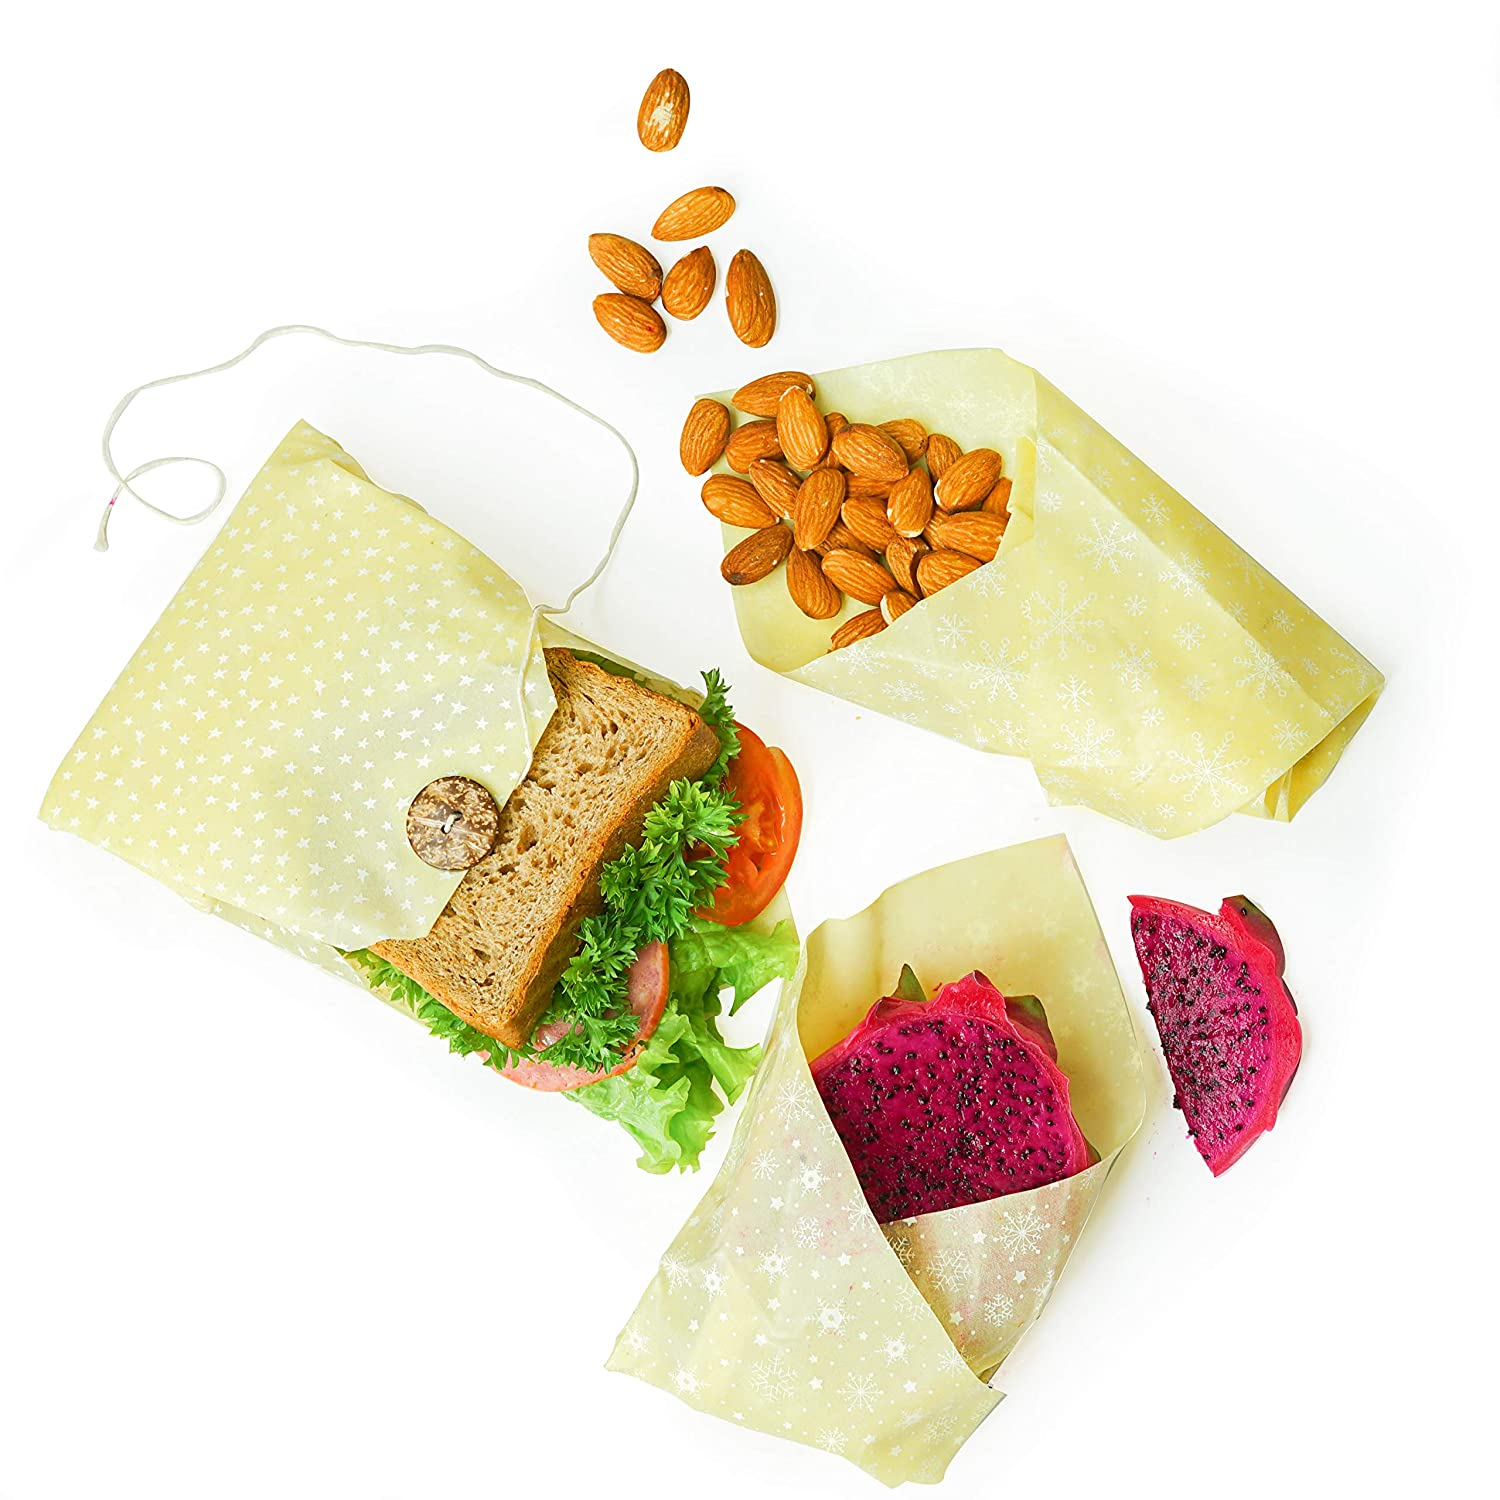 Beeswax wrap - Beeswax food wrap - Lunch Pack Reusable, Natural Healthy and  Biodegradable Wraps Handmade, Non-Toxic & Plastic Free Food Wraps -